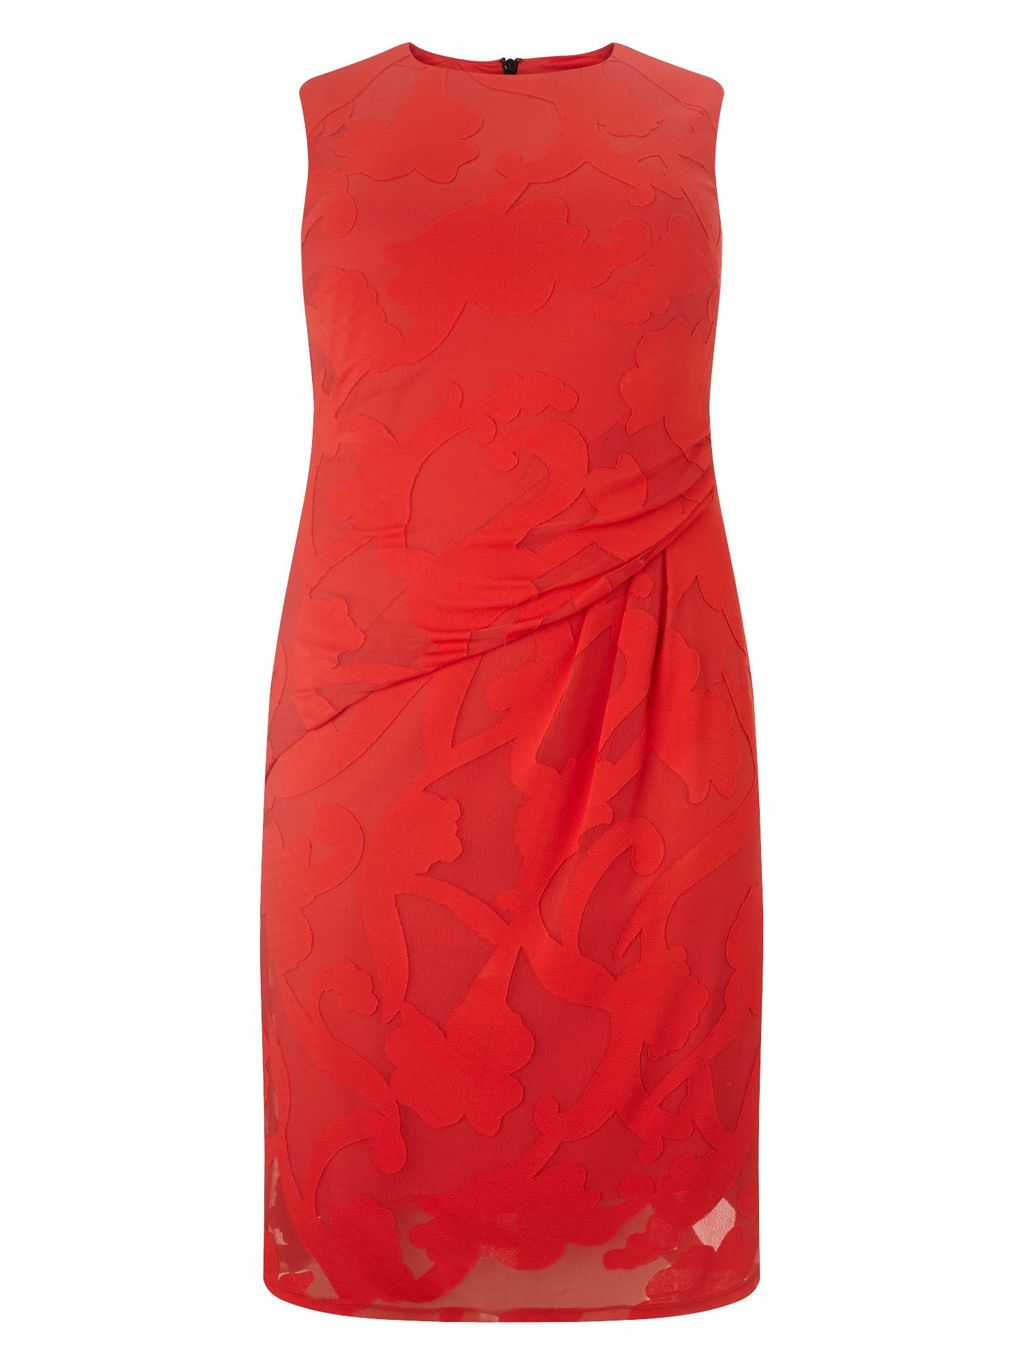 Isadora Dress, Pink - style: shift; neckline: round neck; pattern: plain; sleeve style: sleeveless; predominant colour: true red; occasions: evening, occasion; length: just above the knee; fit: body skimming; fibres: polyester/polyamide - 100%; hip detail: adds bulk at the hips; sleeve length: sleeveless; pattern type: fabric; texture group: other - light to midweight; season: s/s 2016; wardrobe: event